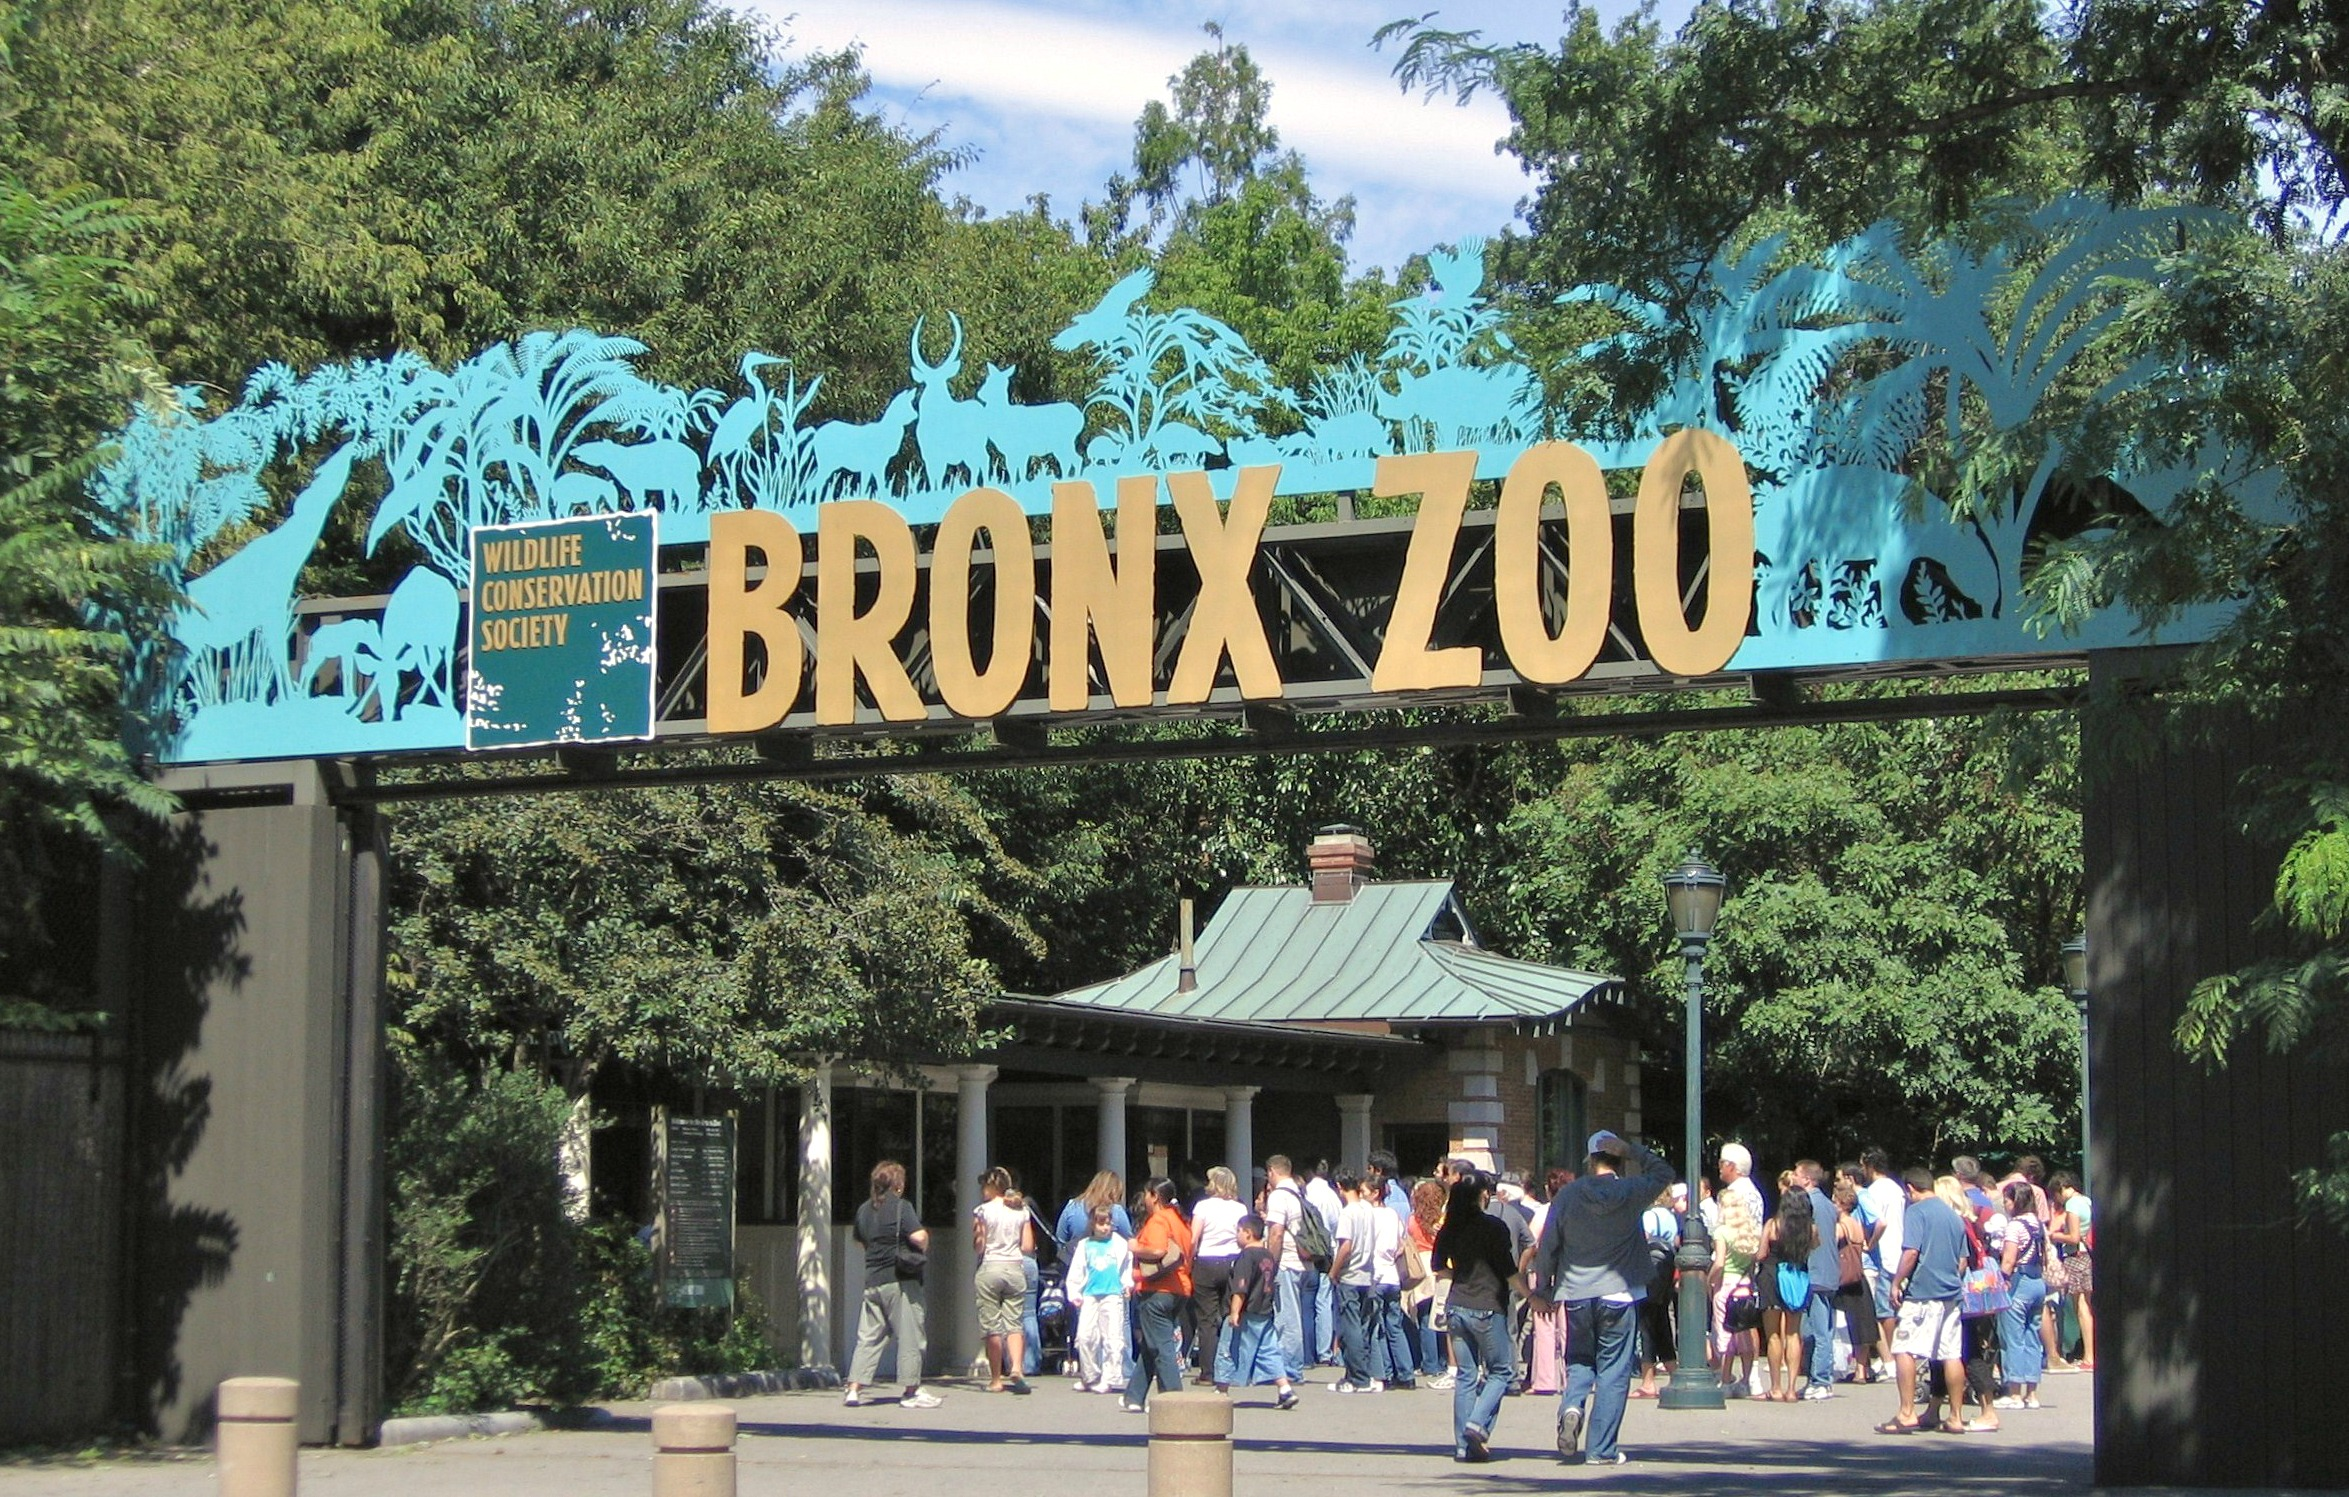 Image result for What to do in Belmont faviana bronx zoo